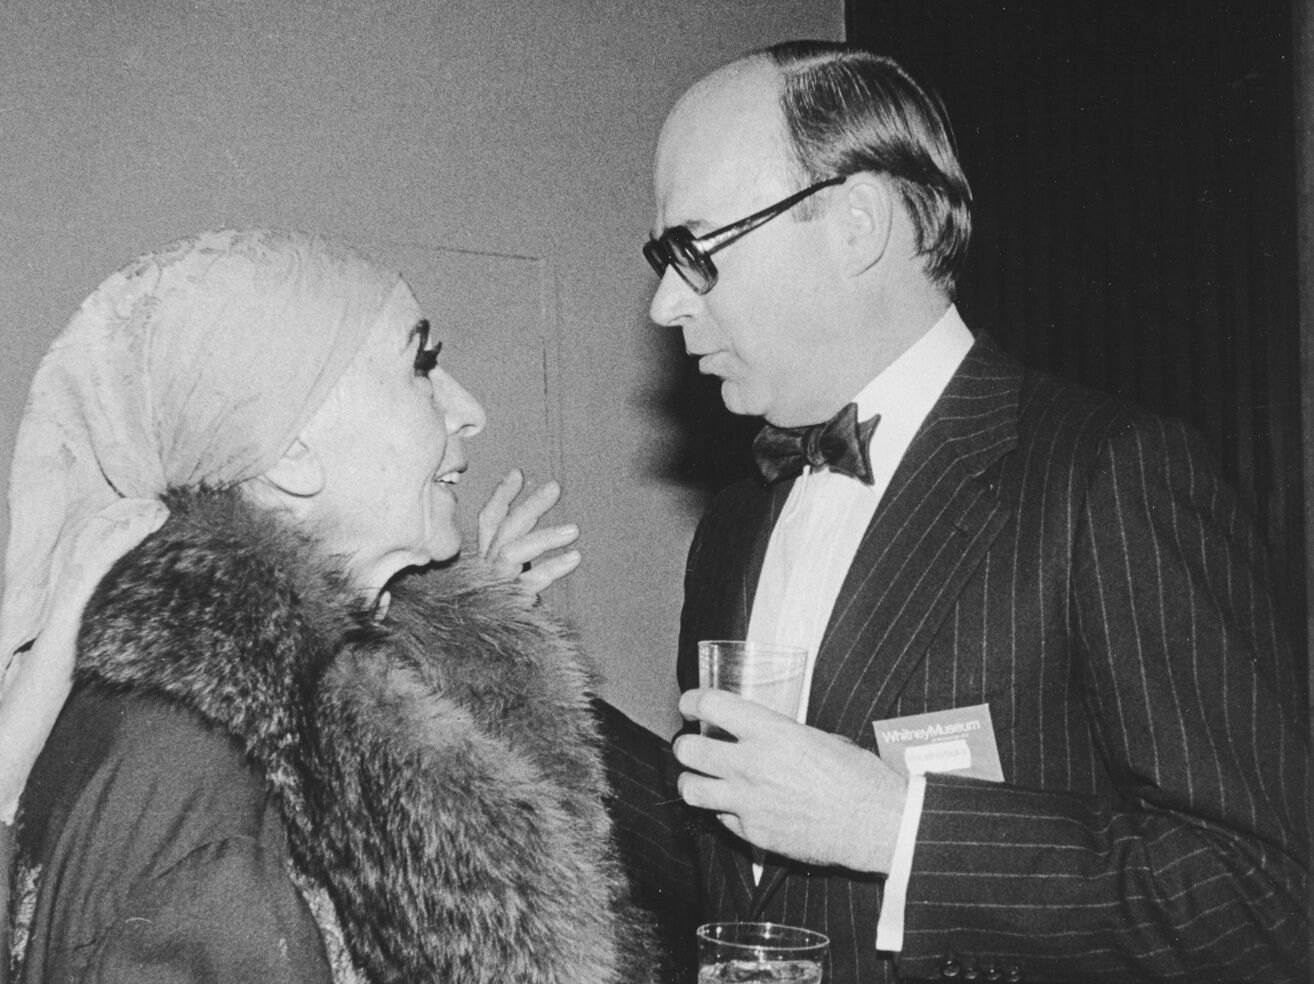 Two people, dressed formally, are in the middle of a conversation.